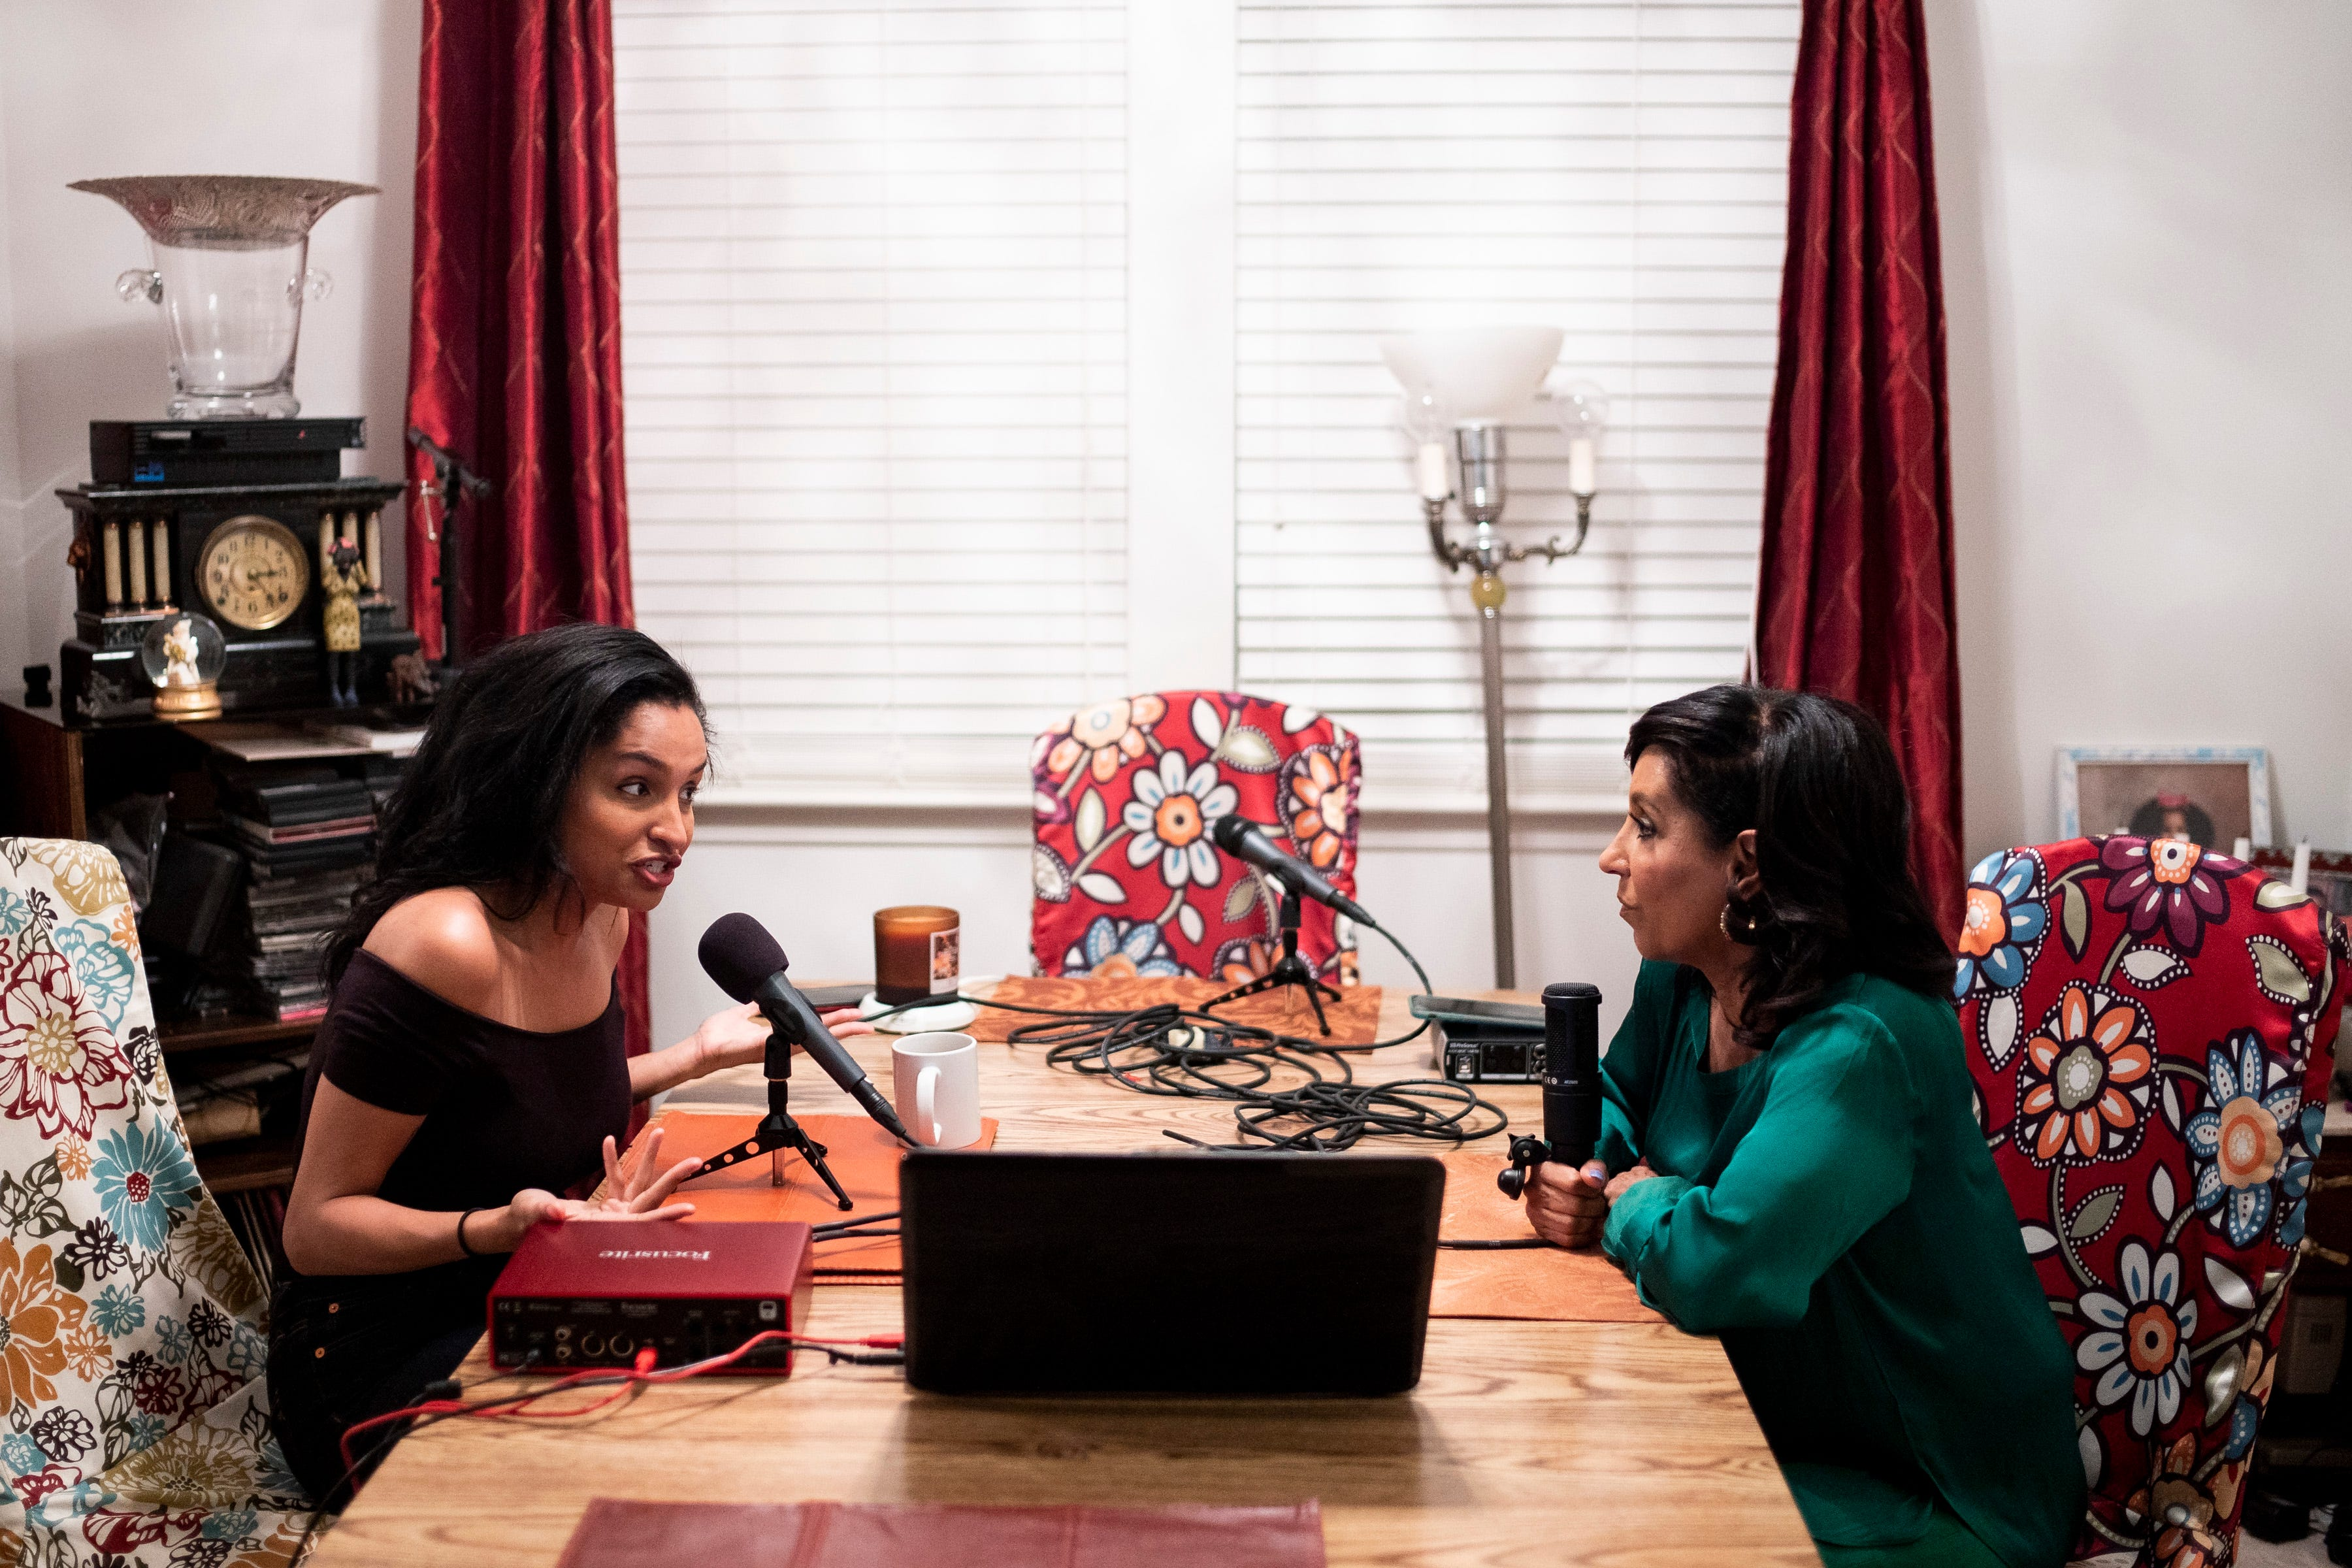 News Channel 5 anchor Vicki Yates and her daughter Torri discuss their  weekly podcast